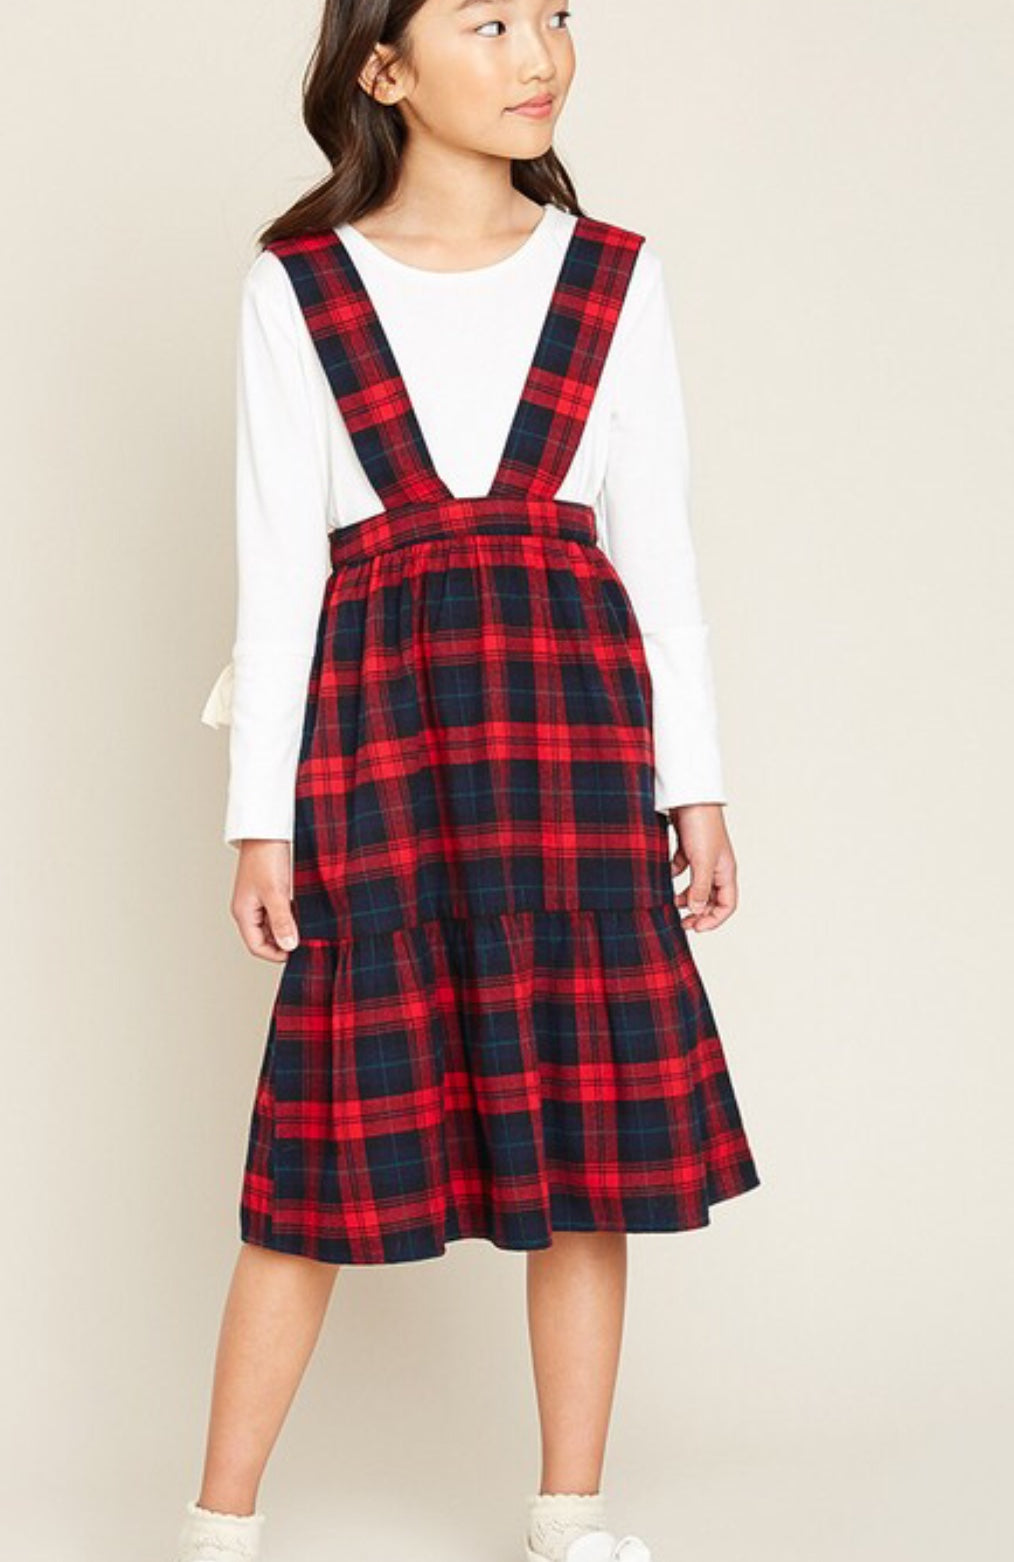 KIDS Tiered Suspender Skirt - Red Mix